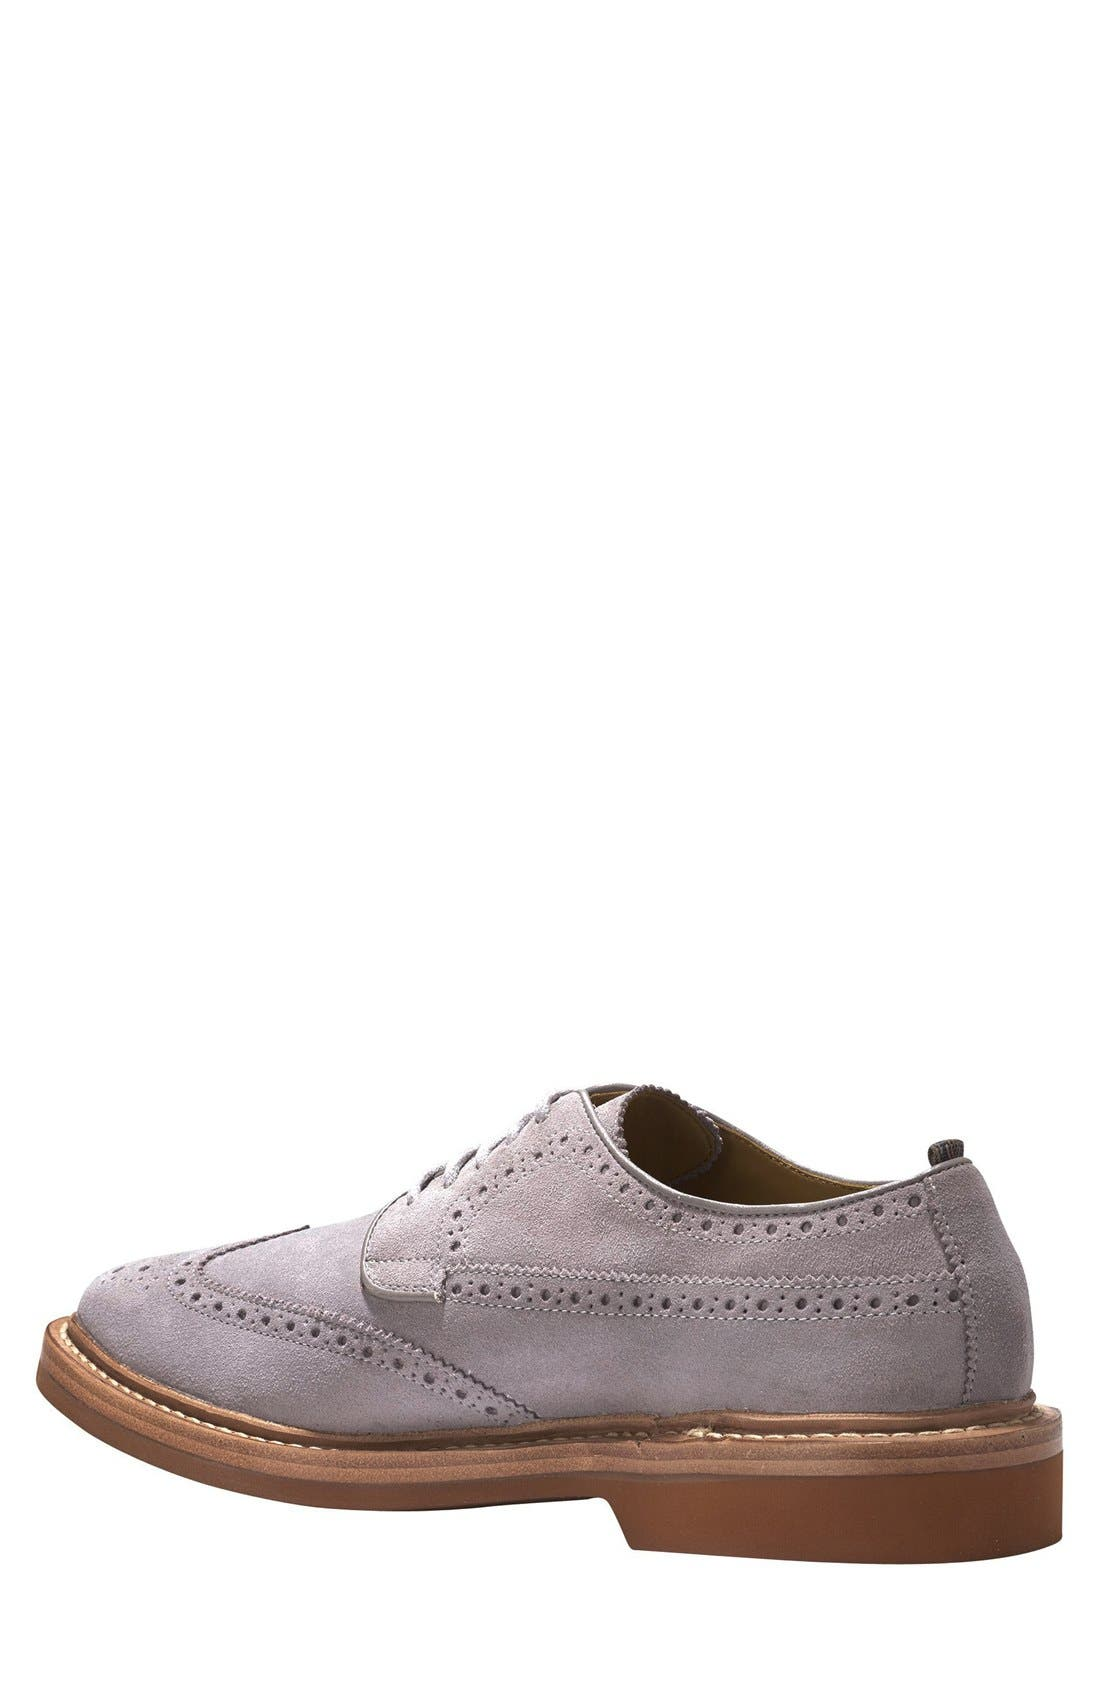 COLE HAAN & TODD SNYDER,                             'Hammond' Wingtip,                             Alternate thumbnail 4, color,                             025